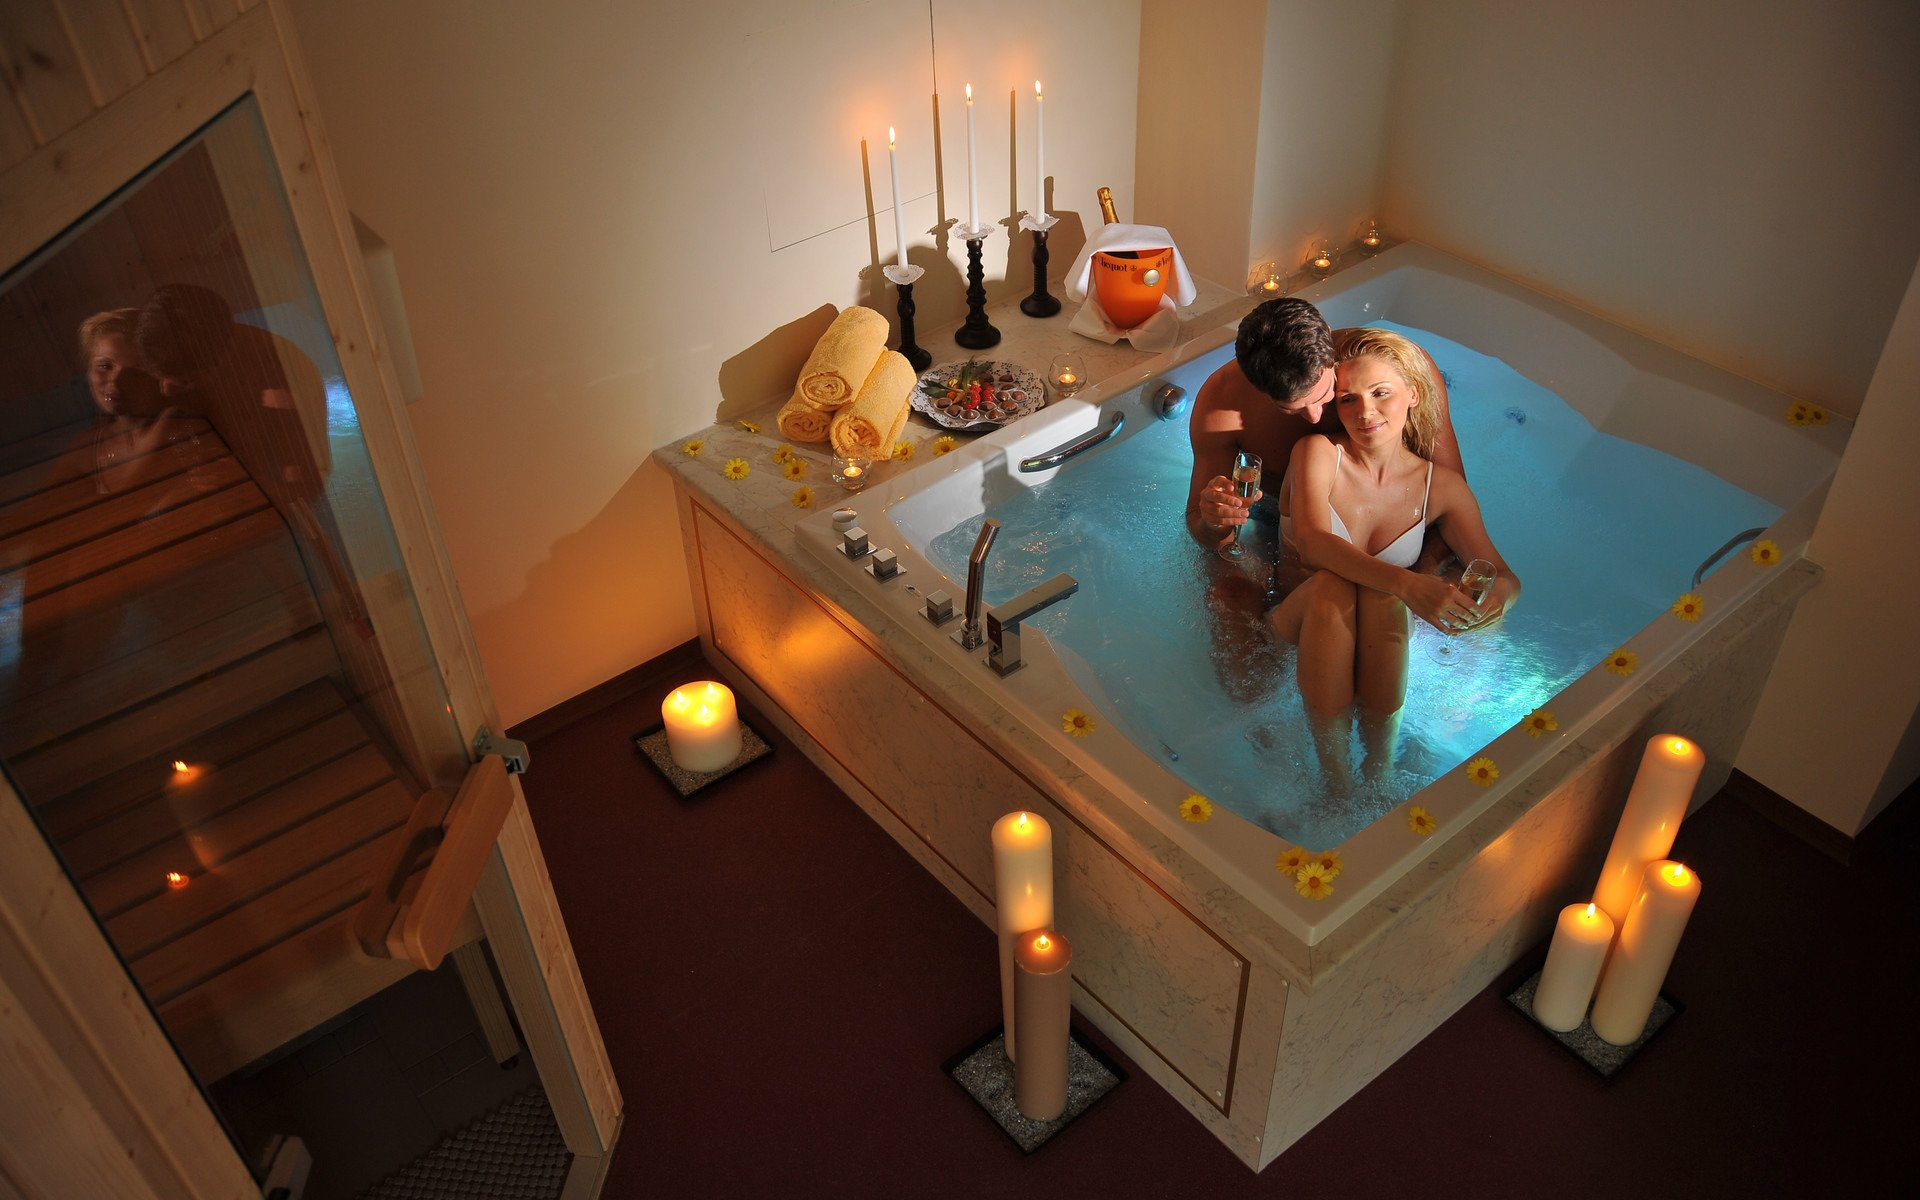 Hot model with big, sexy ass takes bath with male and massages him № 722603 без смс